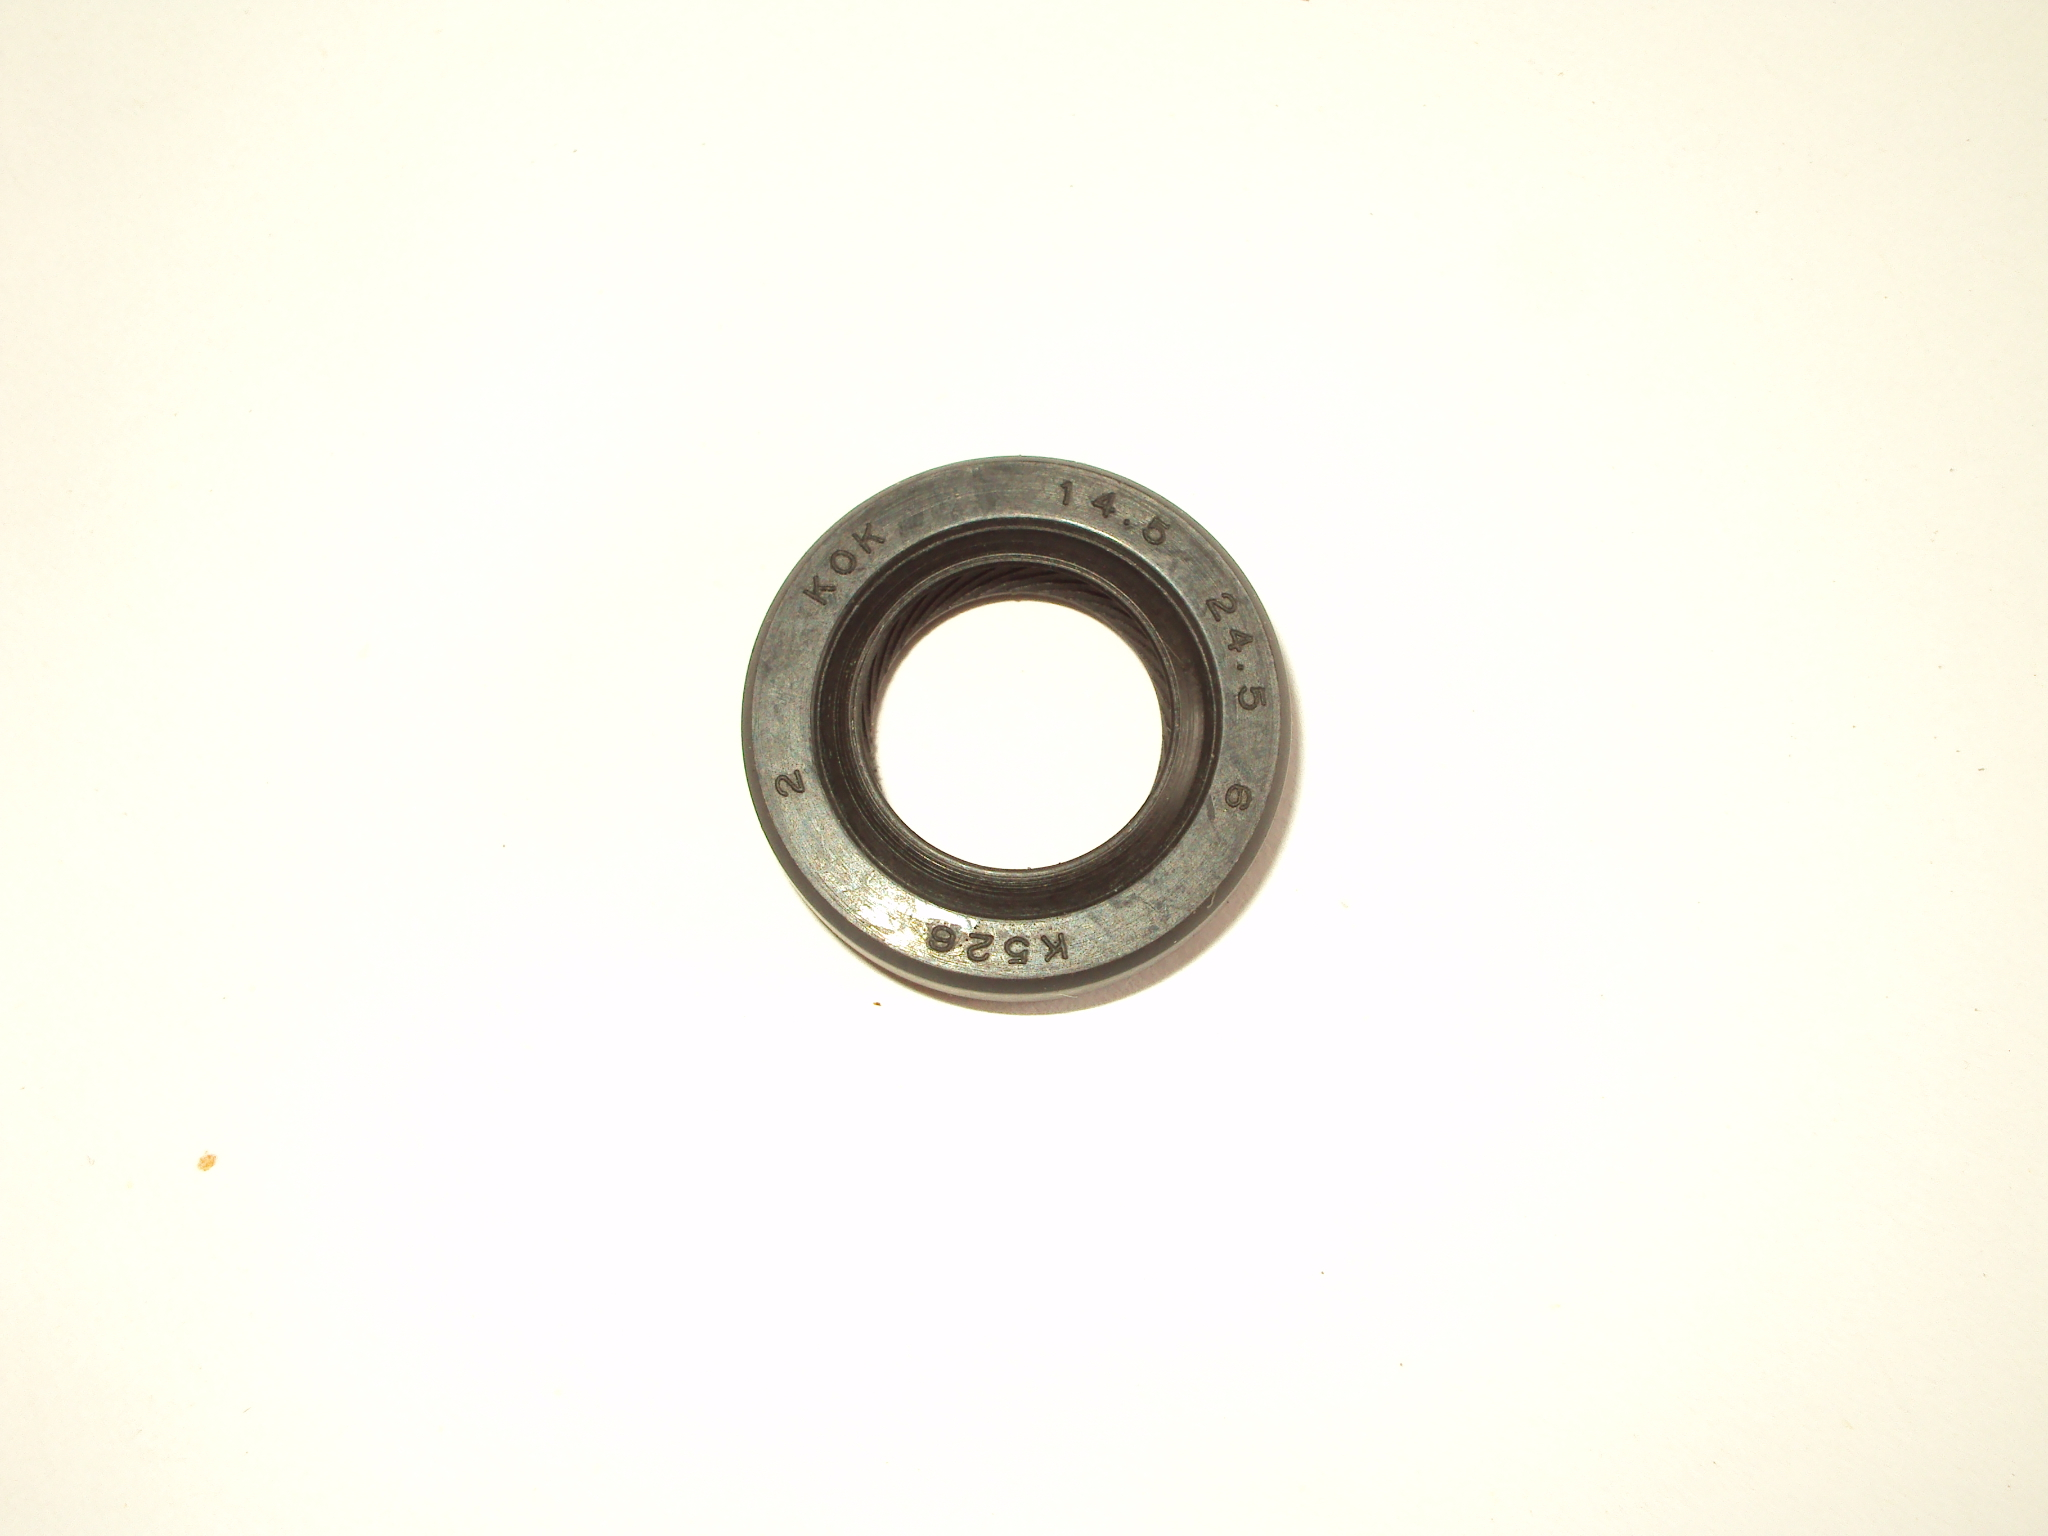 Honda Distributor shaft seal for J30A1 V6